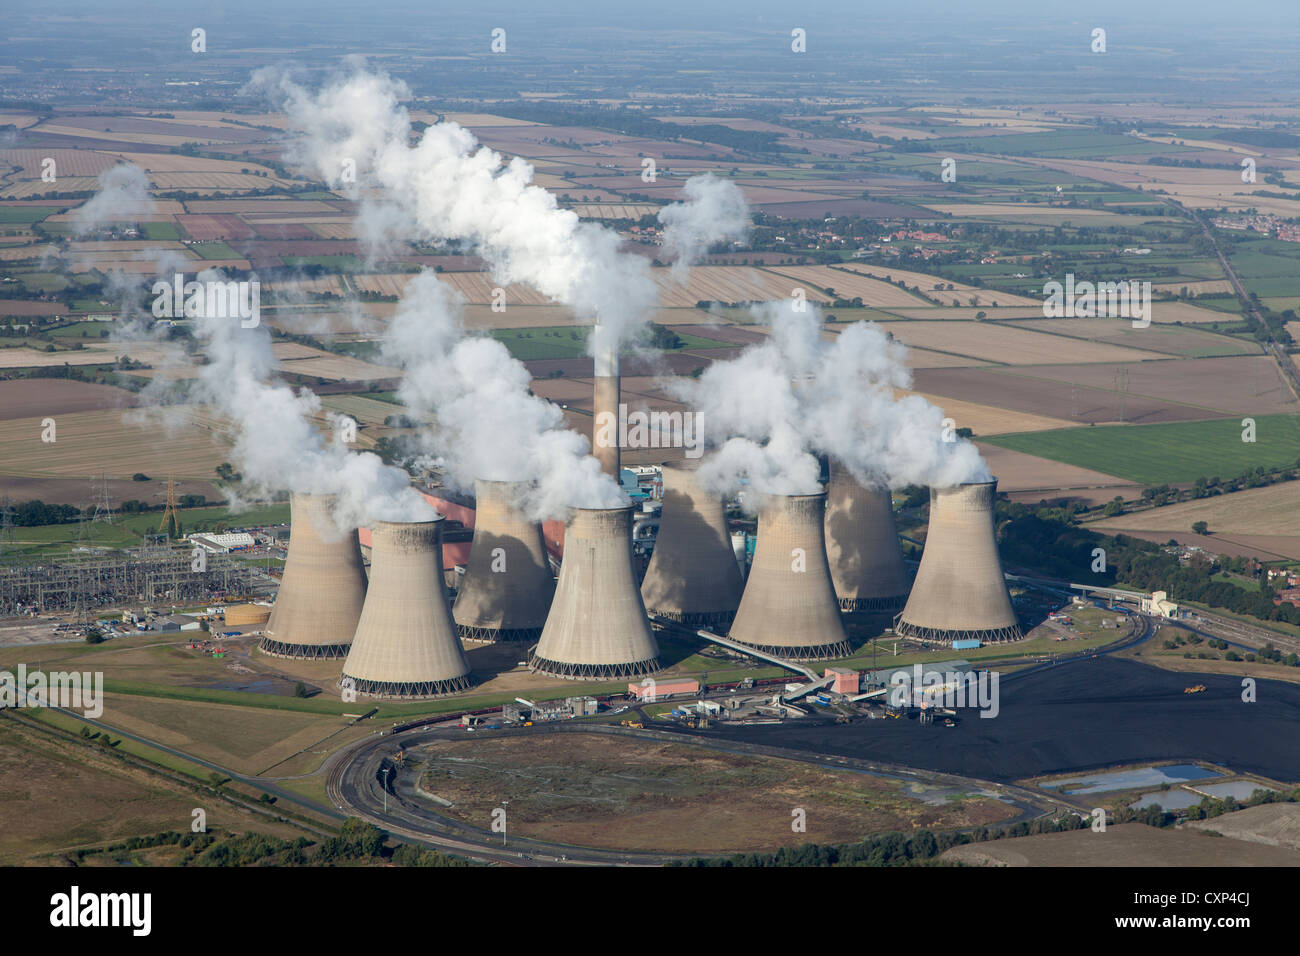 Aerial view of Cottam power station, near Retford, Nottinghamshire, owned by EDF Energy. A coal-fired power station - Stock Image